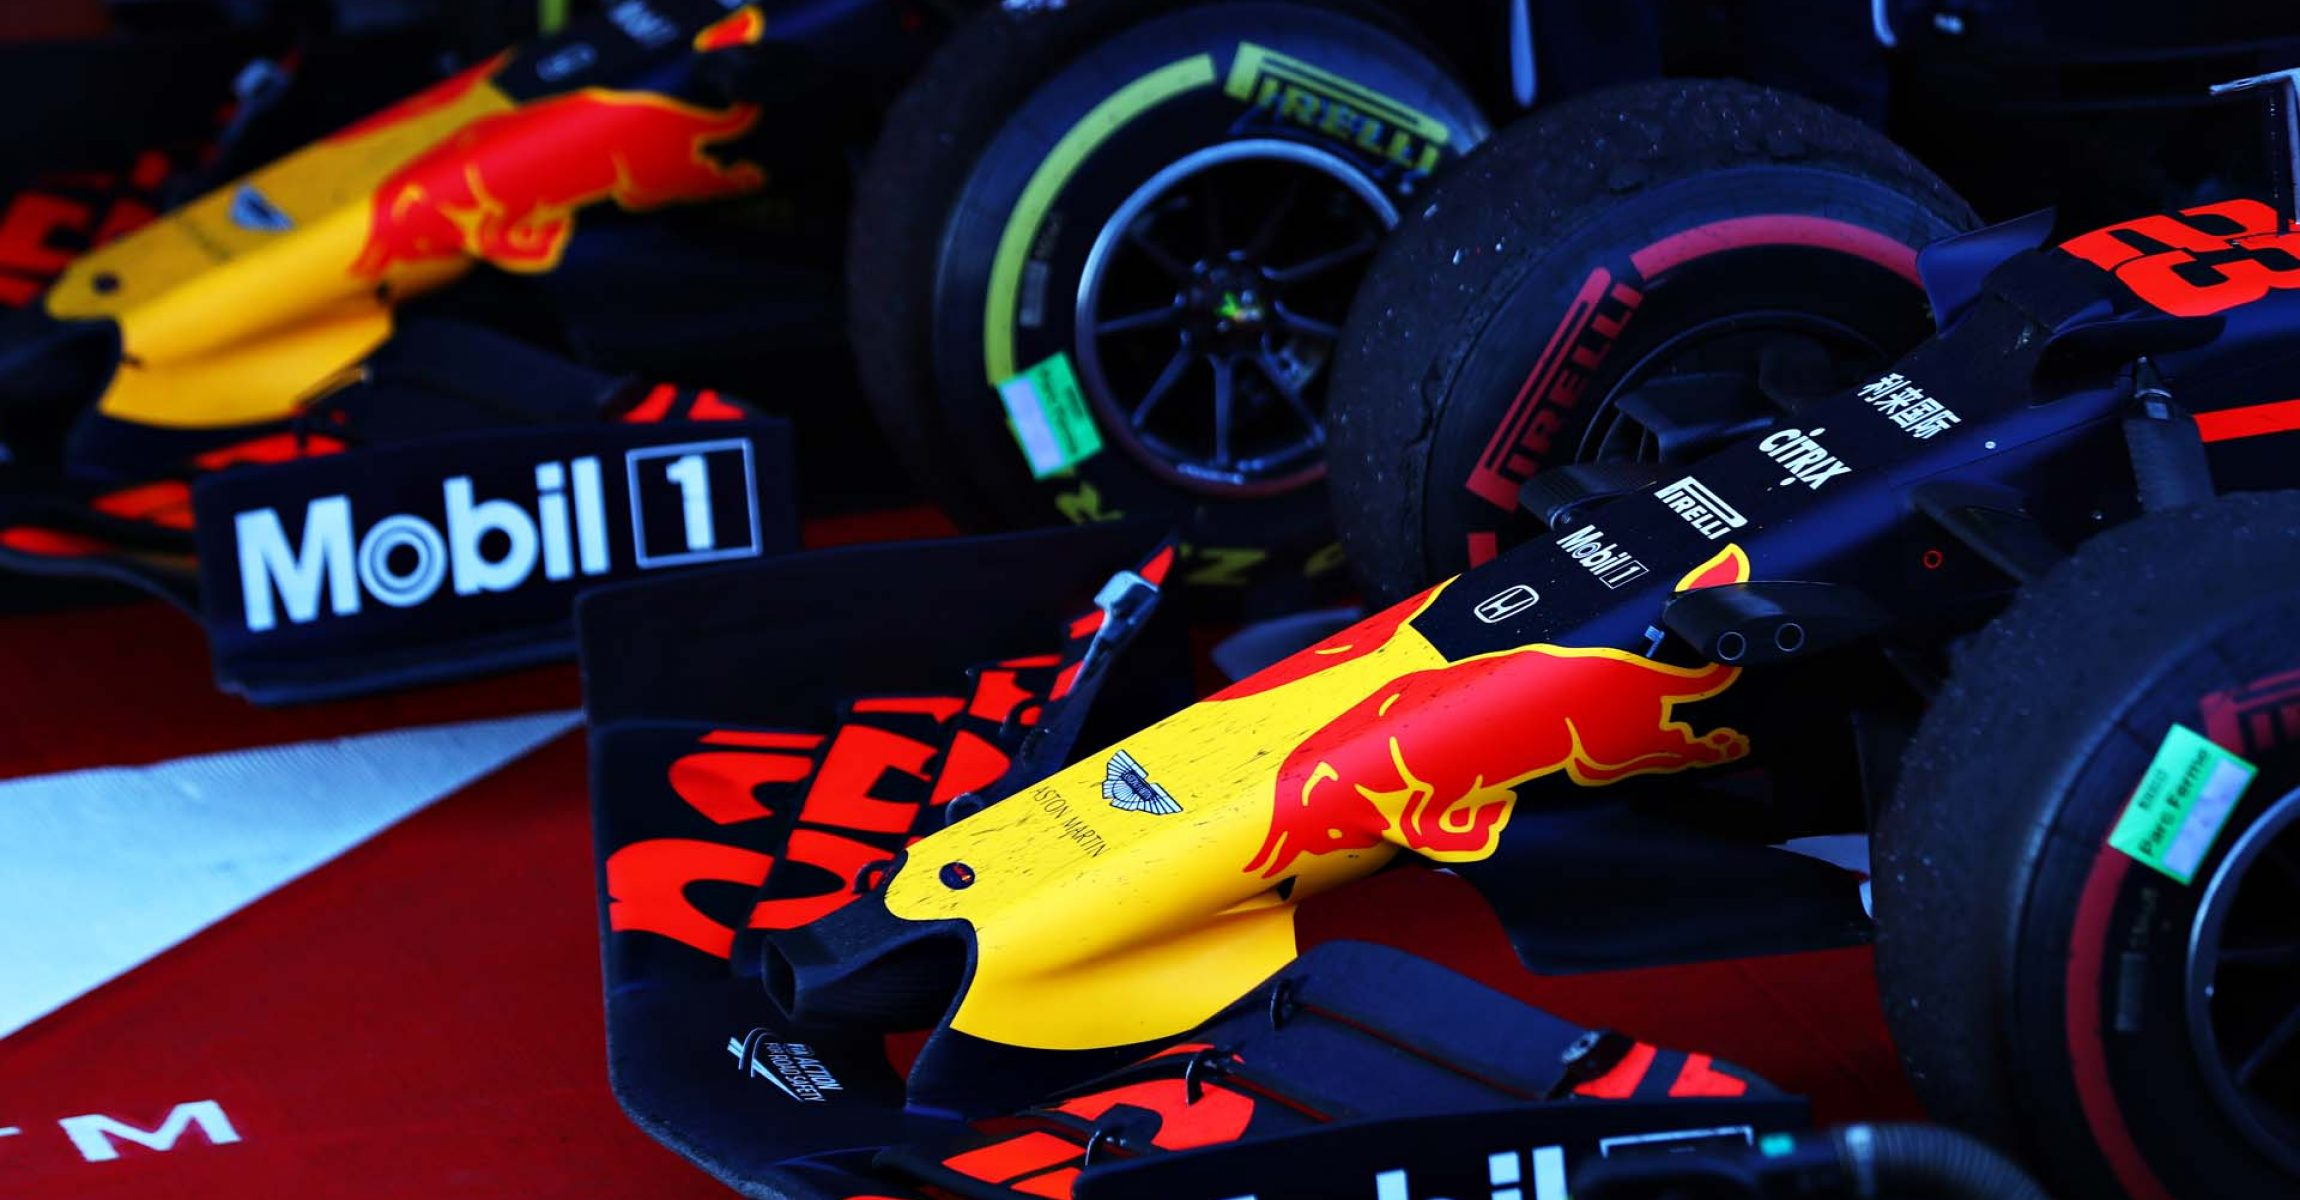 SOCHI, RUSSIA - SEPTEMBER 29: The cars of Max Verstappen of Netherlands and Red Bull Racing and Alexander Albon of Thailand and Red Bull Racing are seen in parc ferme during the F1 Grand Prix of Russia at Sochi Autodrom on September 29, 2019 in Sochi, Russia. (Photo by Mark Thompson/Getty Images) // Getty Images / Red Bull Content Pool // AP-21QJAHQNN1W11 // Usage for editorial use only //